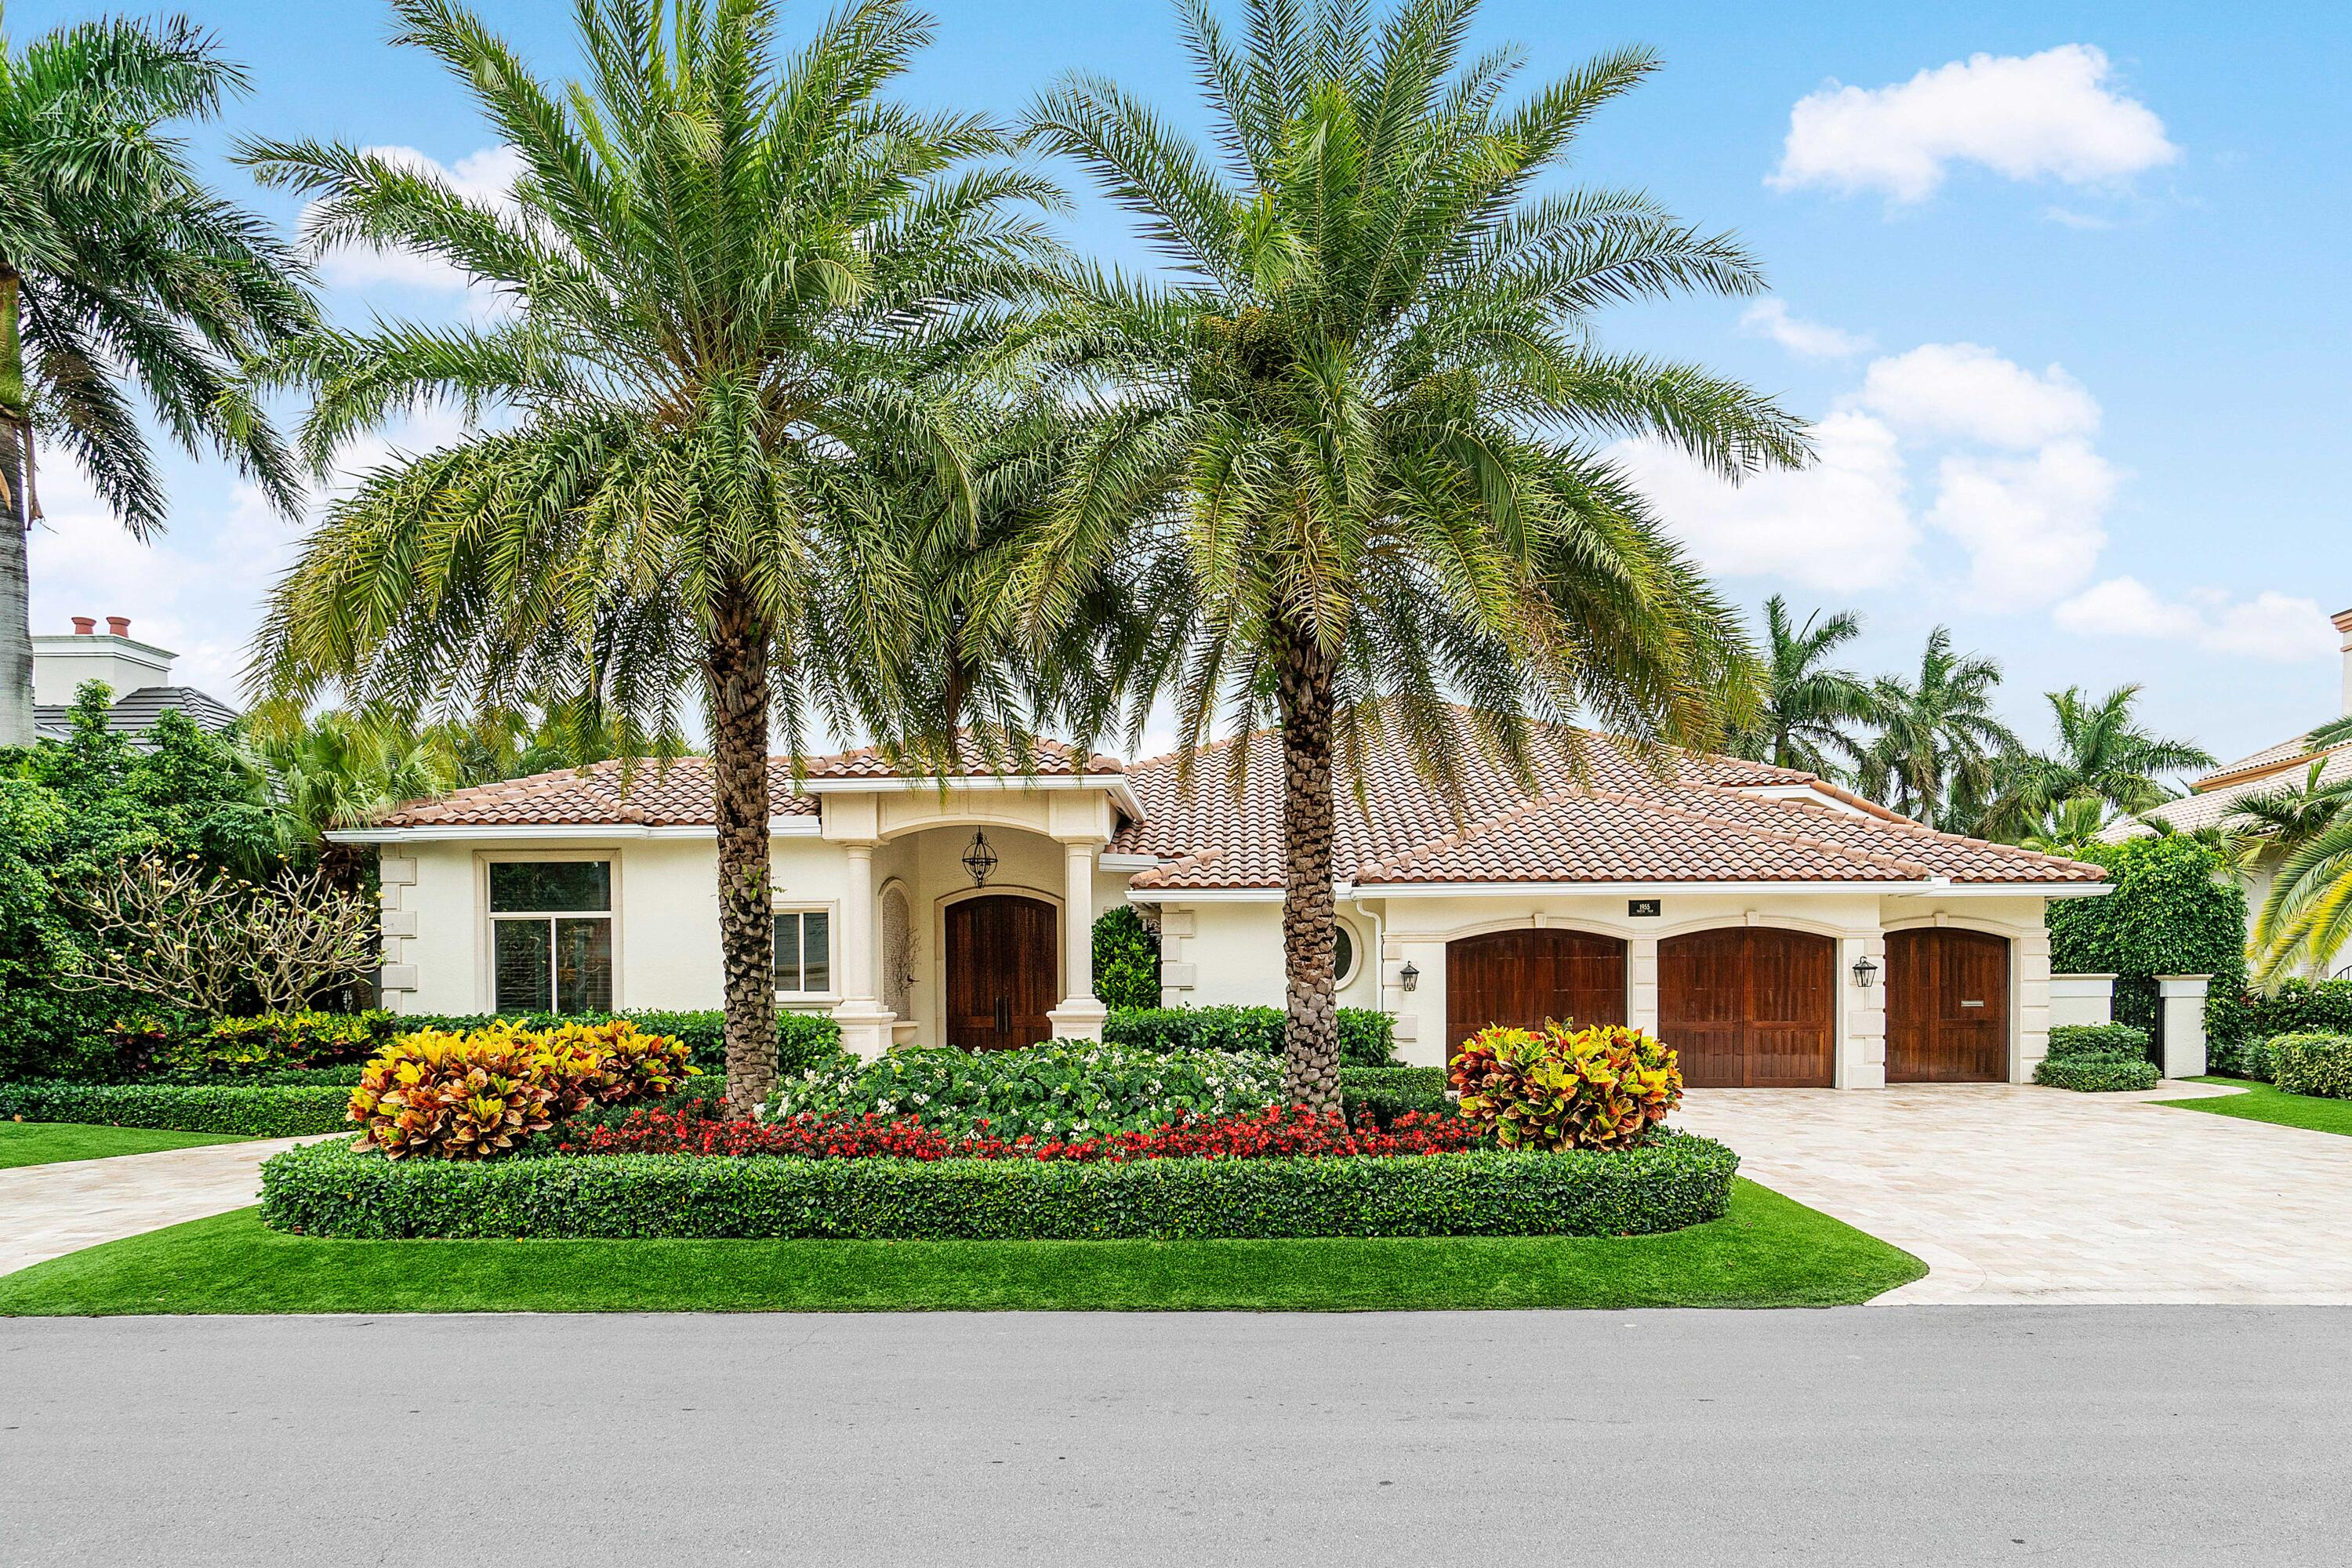 1955  Thatch Palm Drive  For Sale 10717297, FL